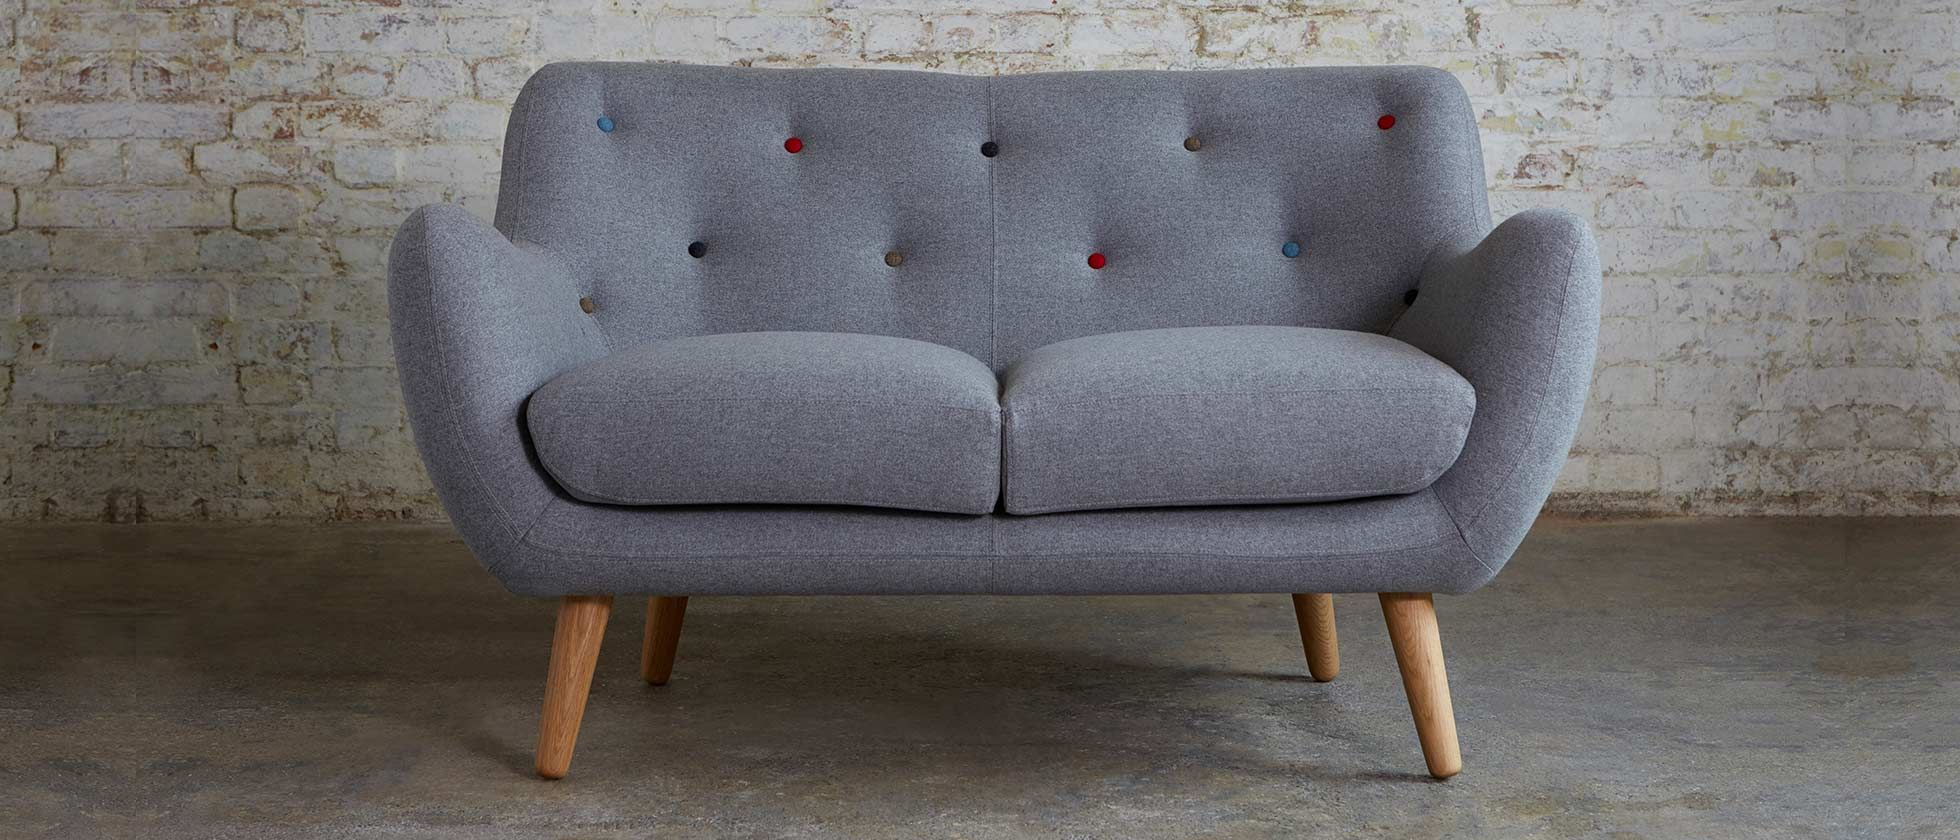 Buy modern sofas online 7 day quick delivery sofas uk